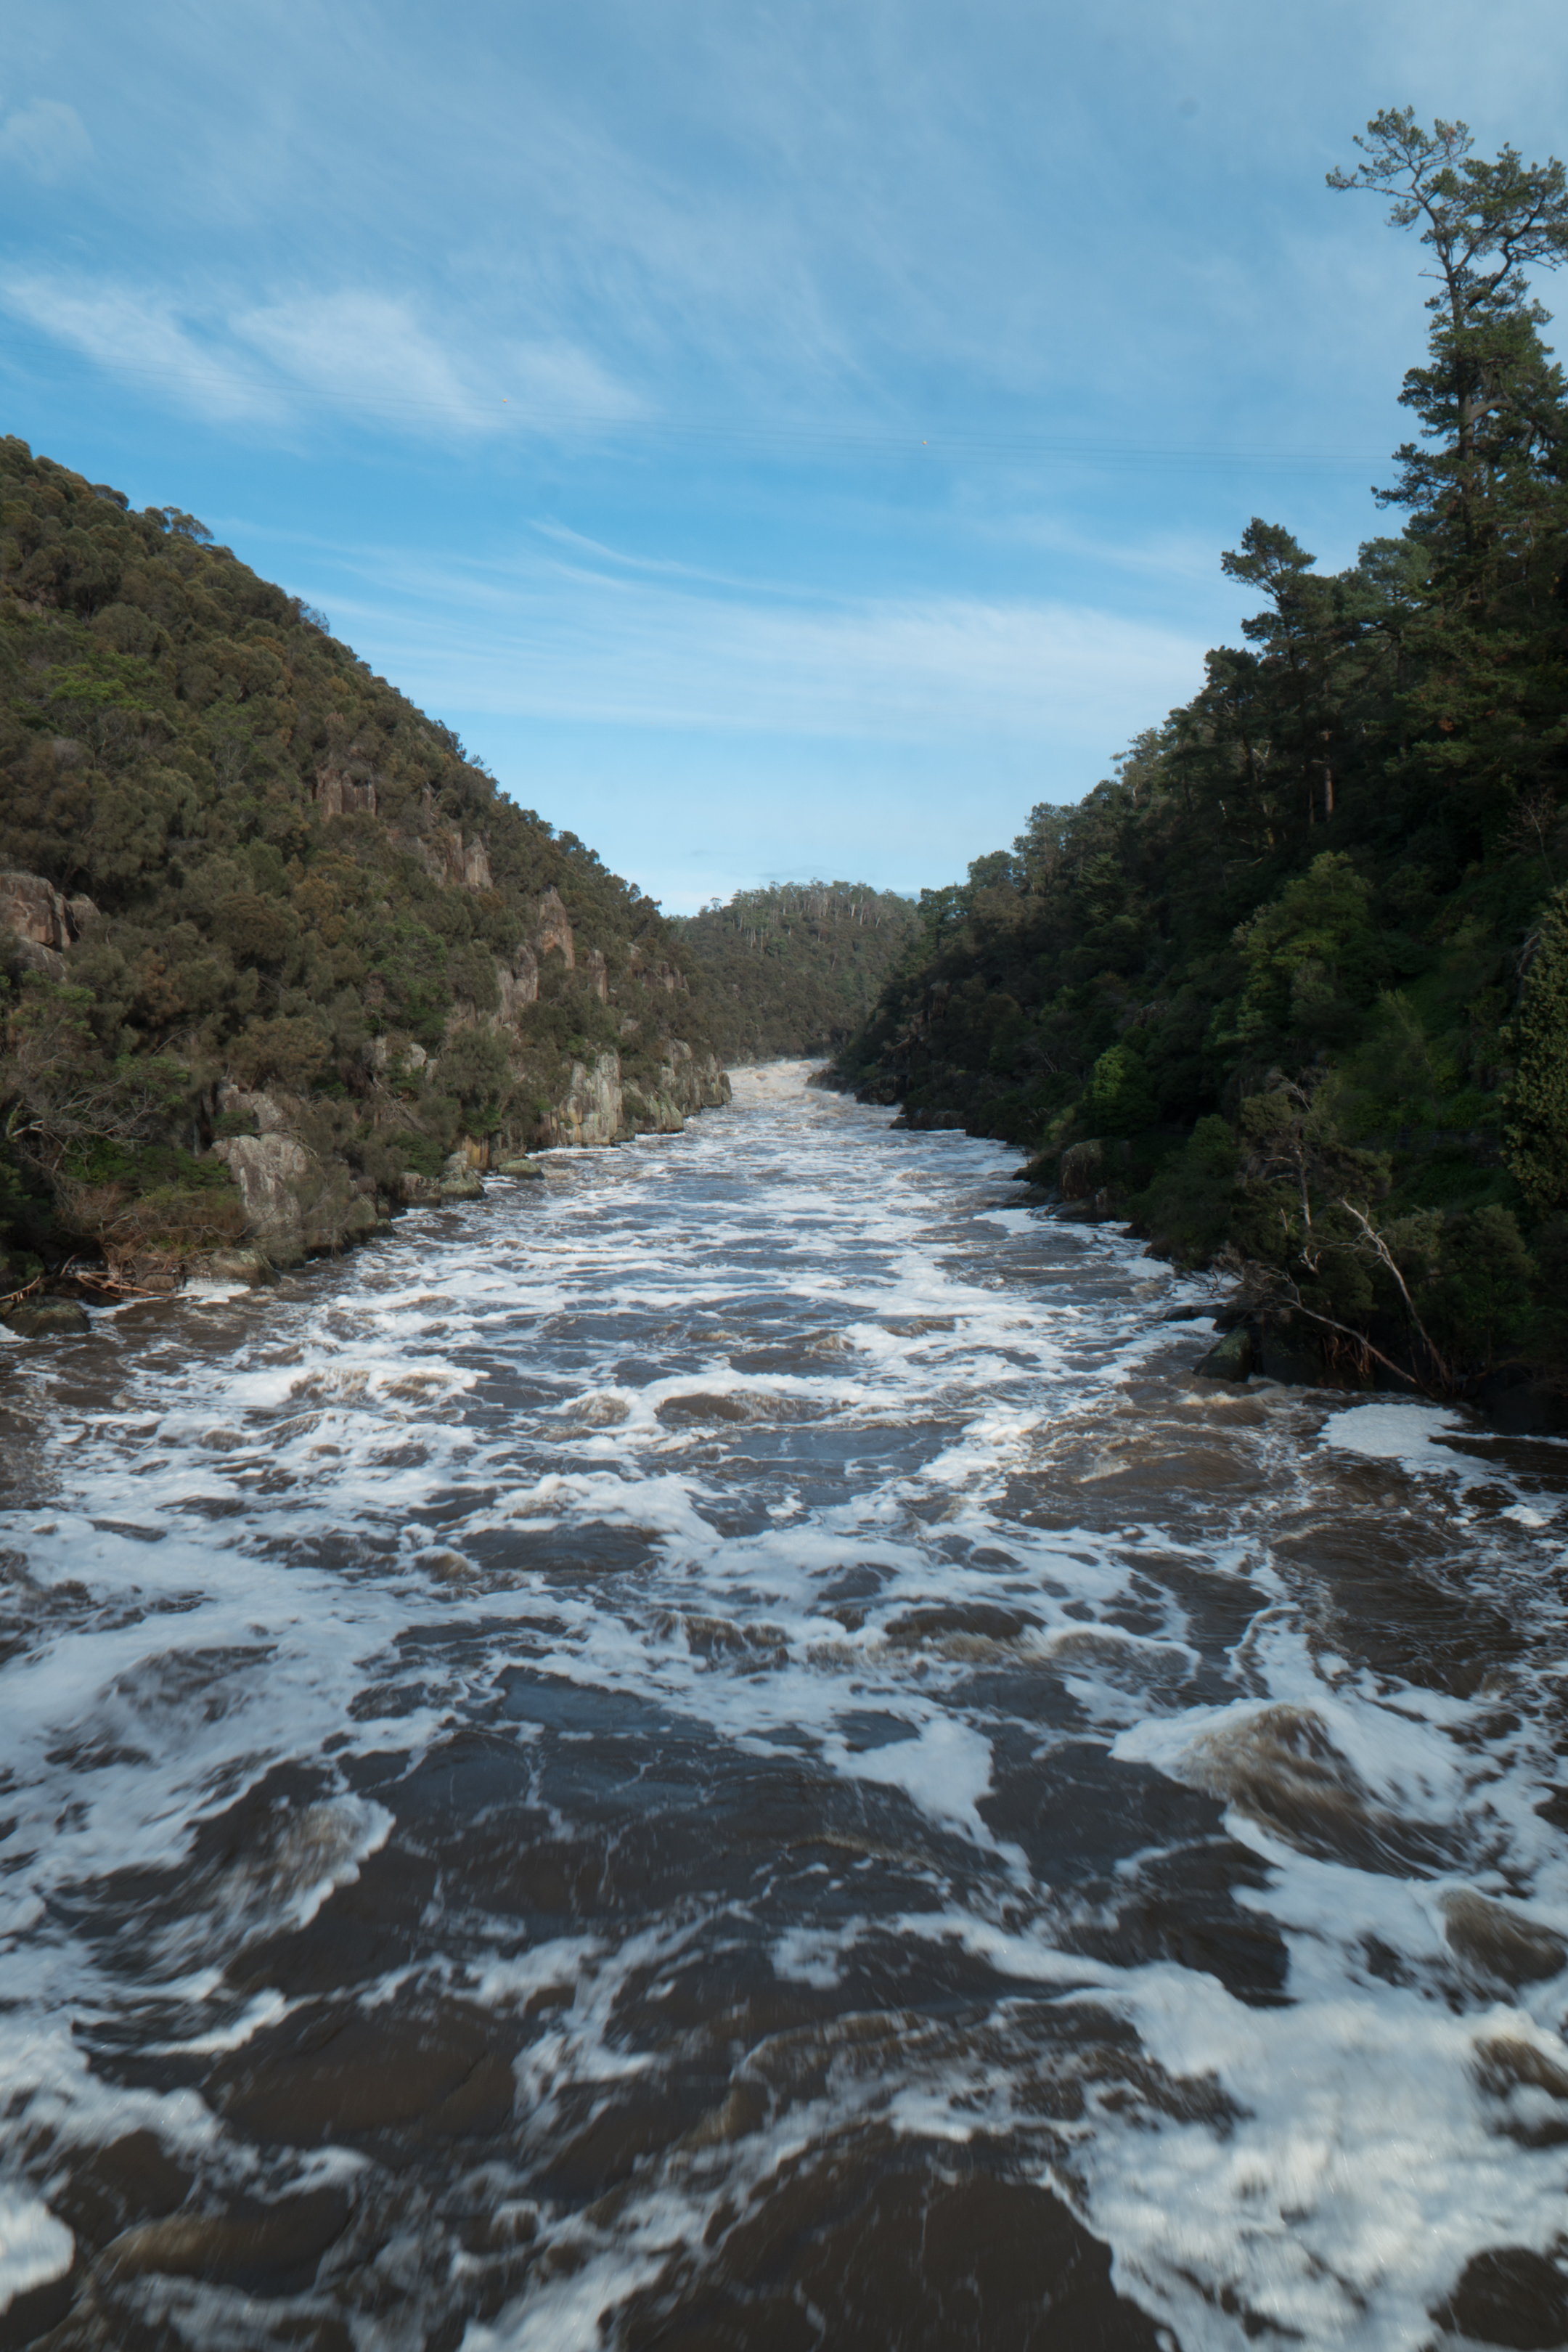 Launceston's Cataract Gorge in flood, June 2016